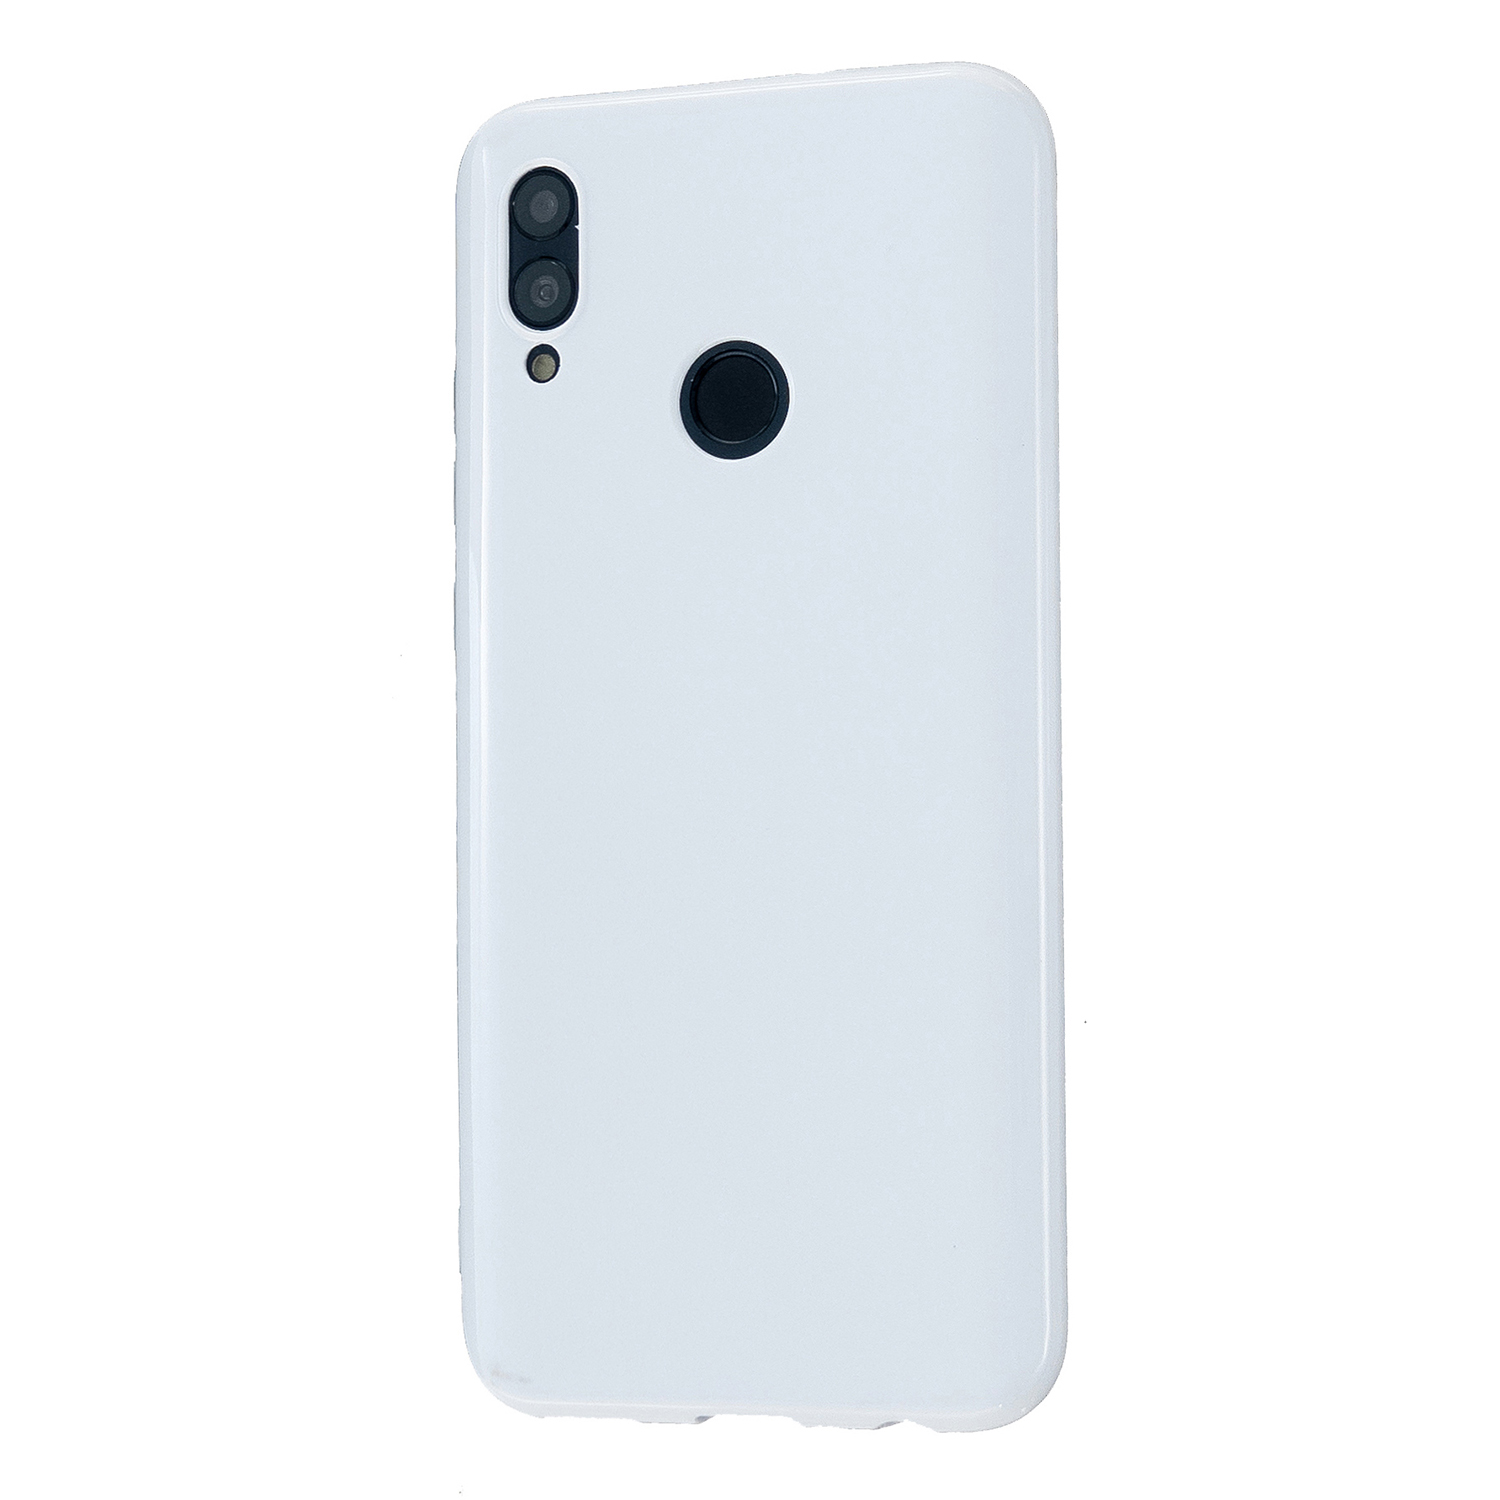 For HUAWEI Honor 10 Lite/P Smart/P Smart-Z 2019 Cellphone Shell Simple Profile Soft TPU Phone Case  Milk white